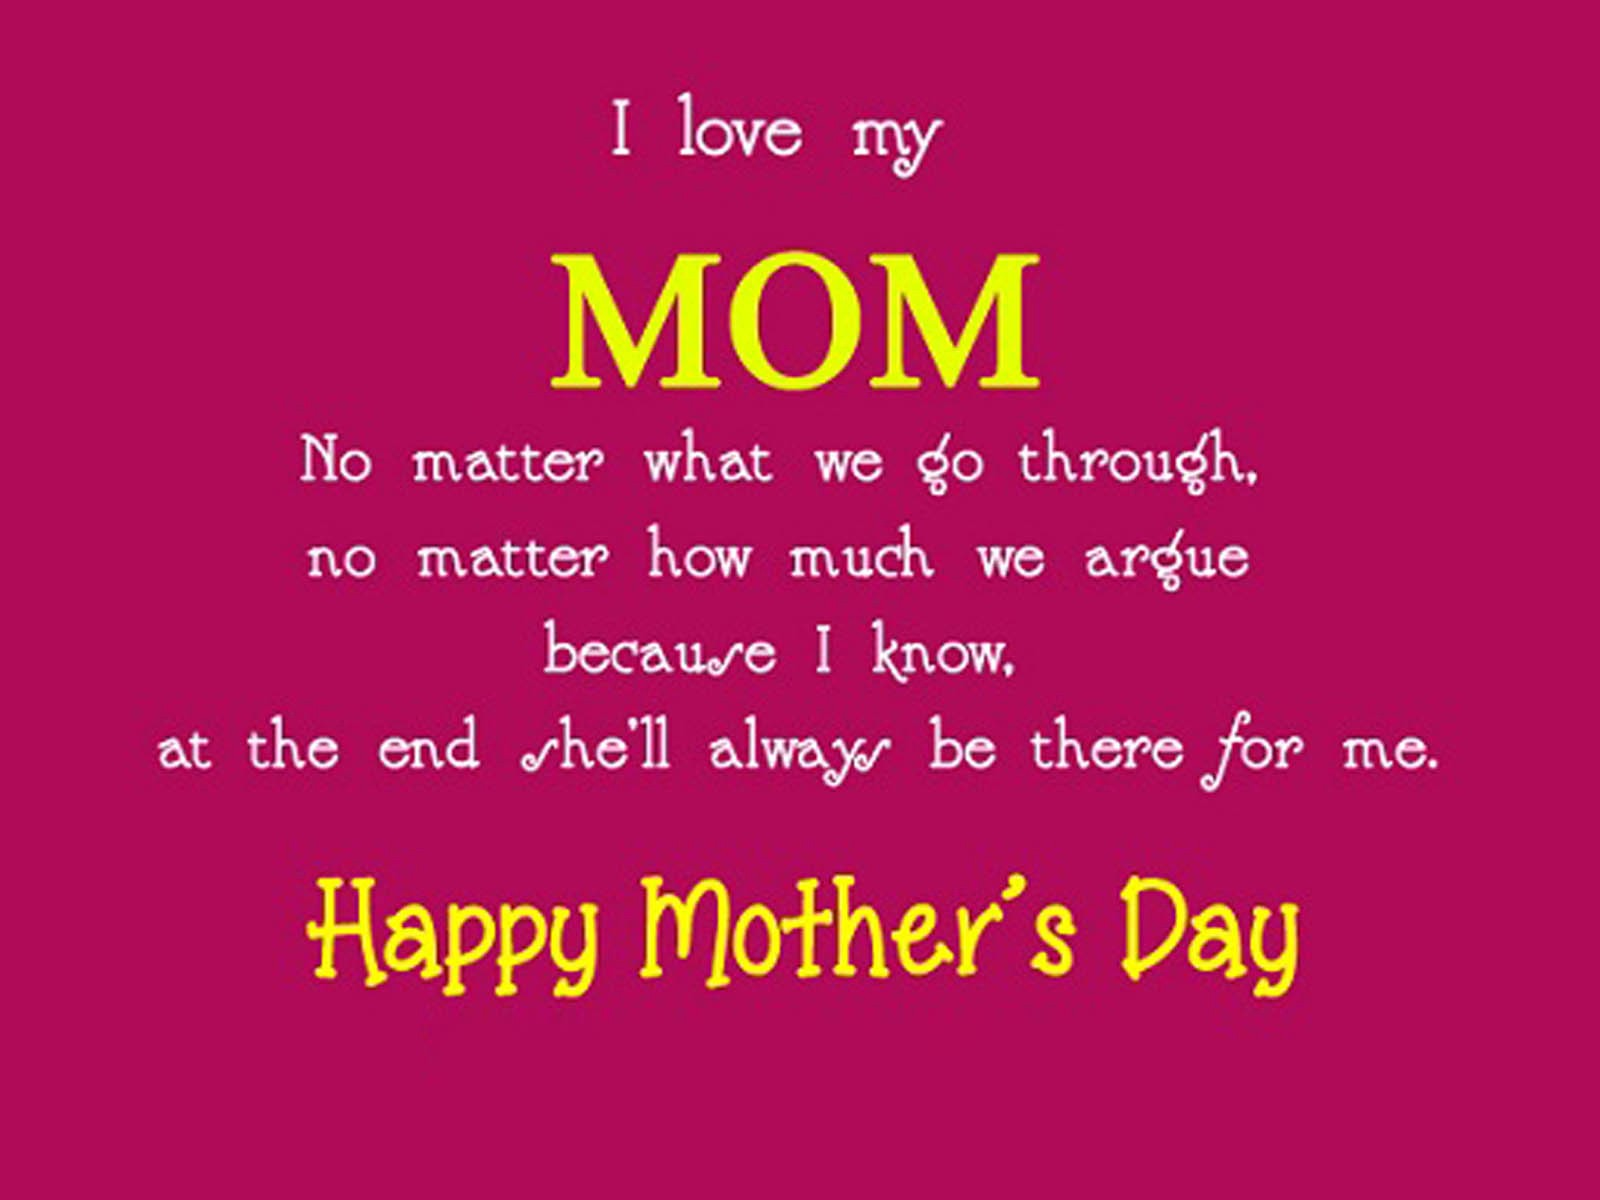 Cute Mothers Day Sms Small Quotes Heartfelt Wishes Messages